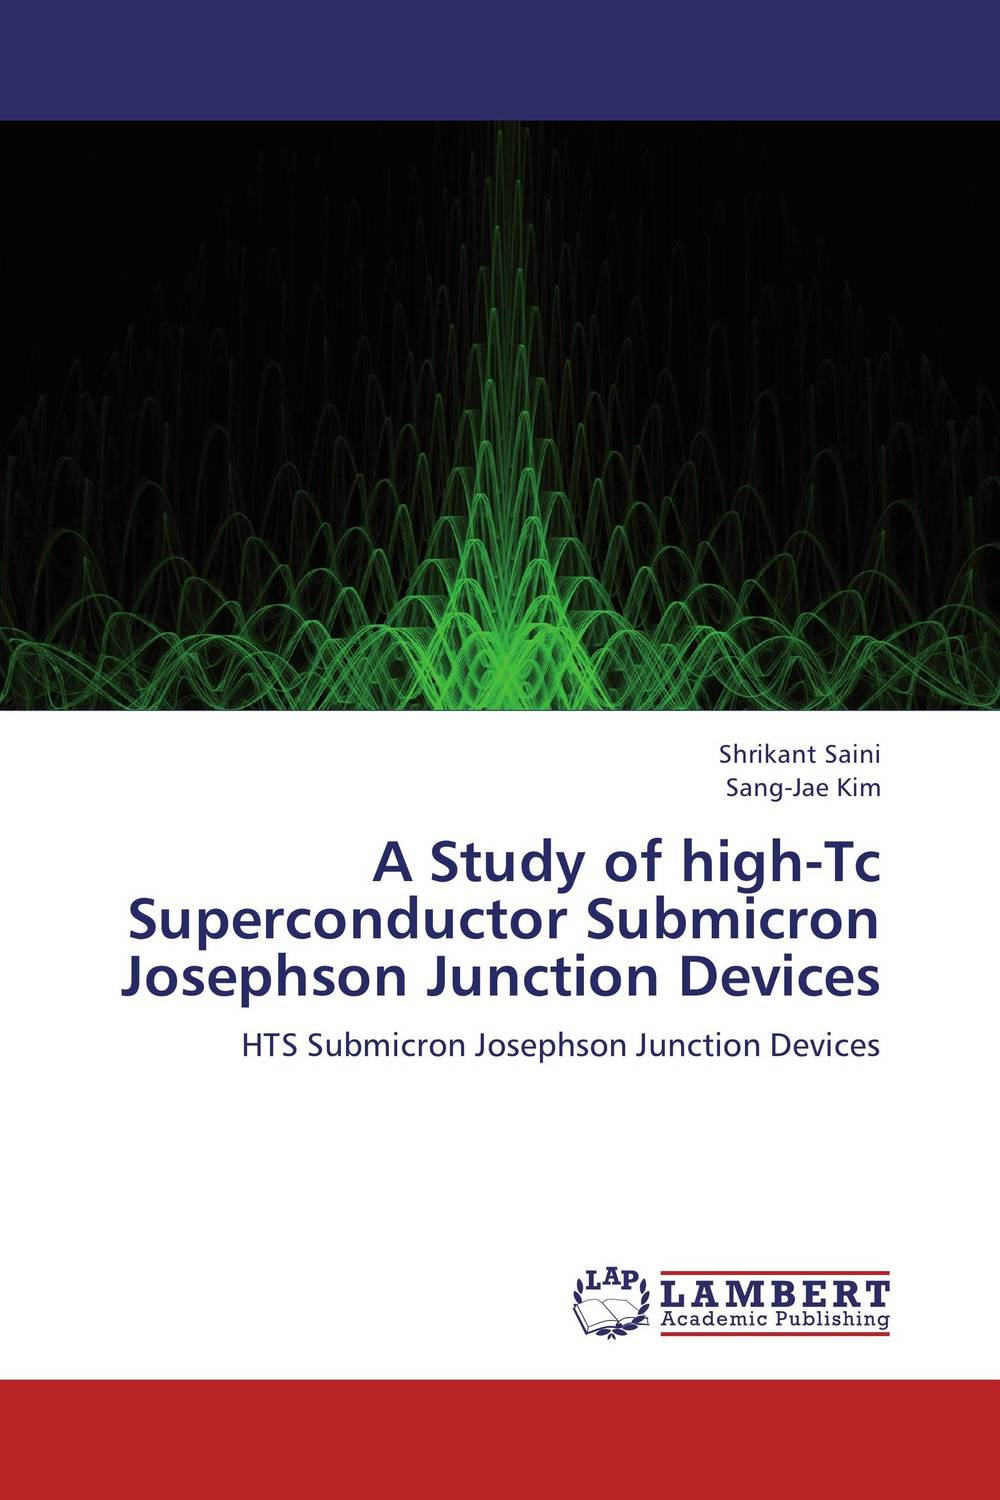 A Study of high-Tc Superconductor Submicron Josephson Junction Devices gap junctions